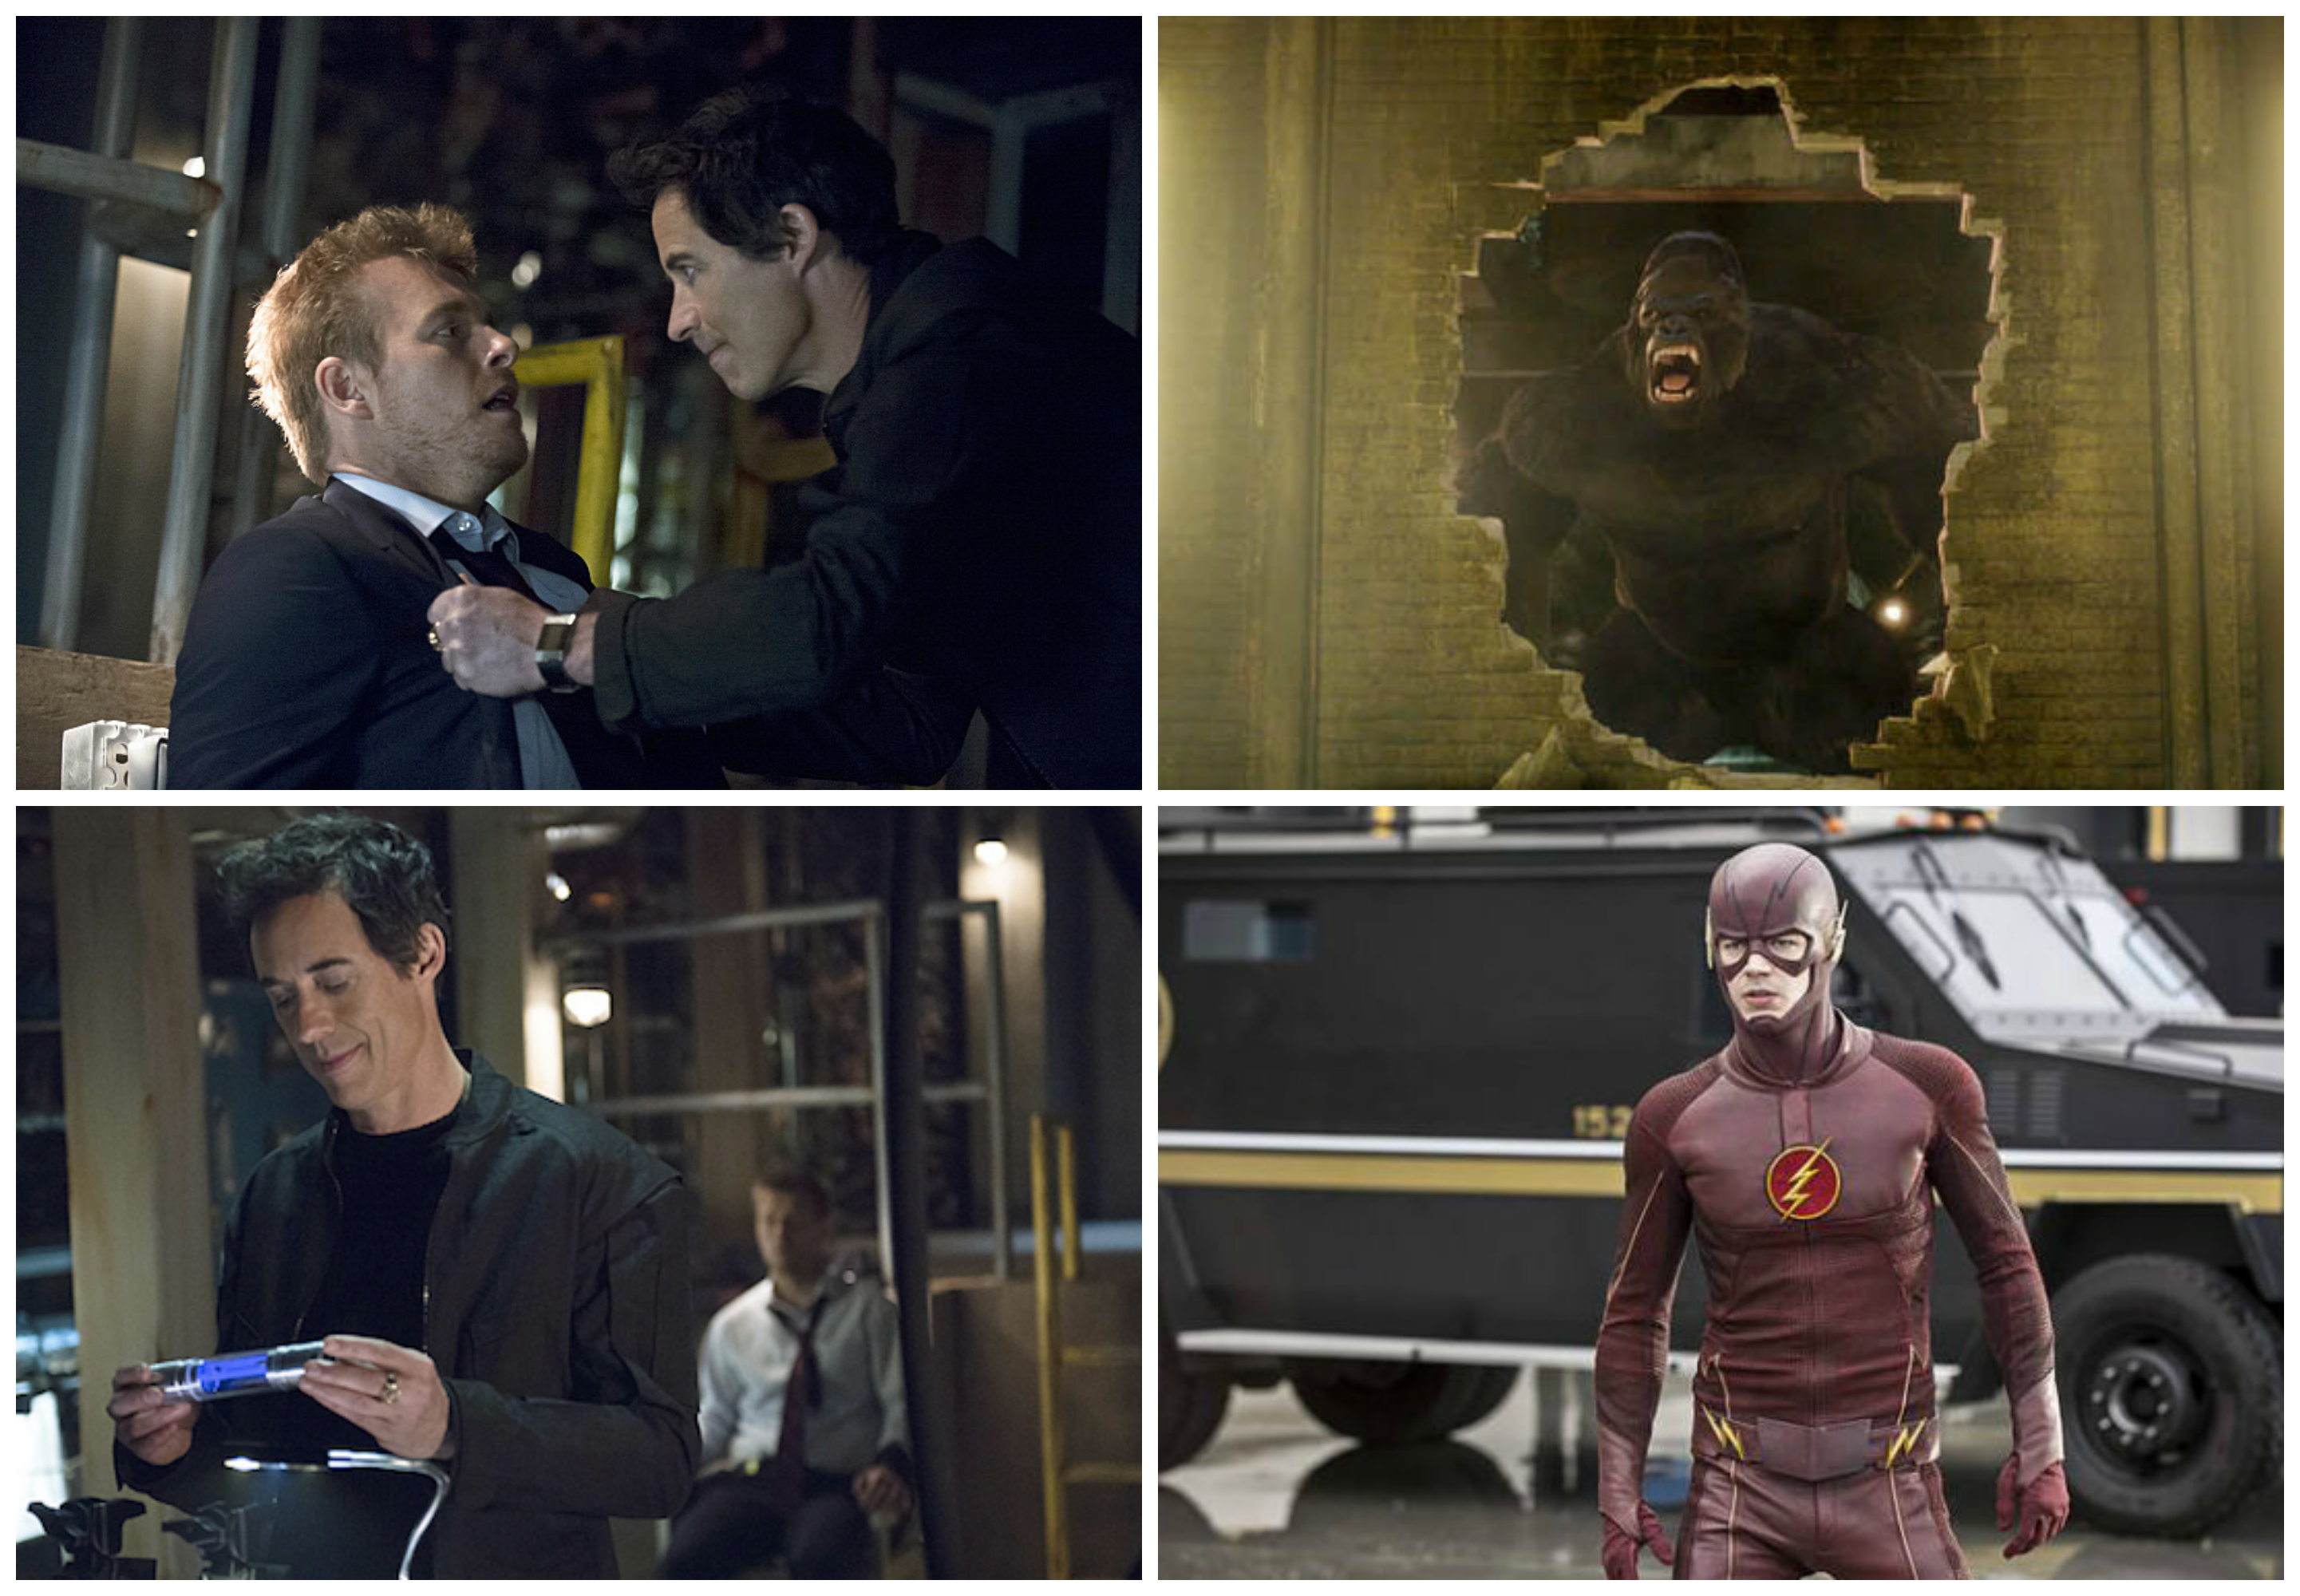 Episode 215: The Flash - S1E21 - Grodd Lives